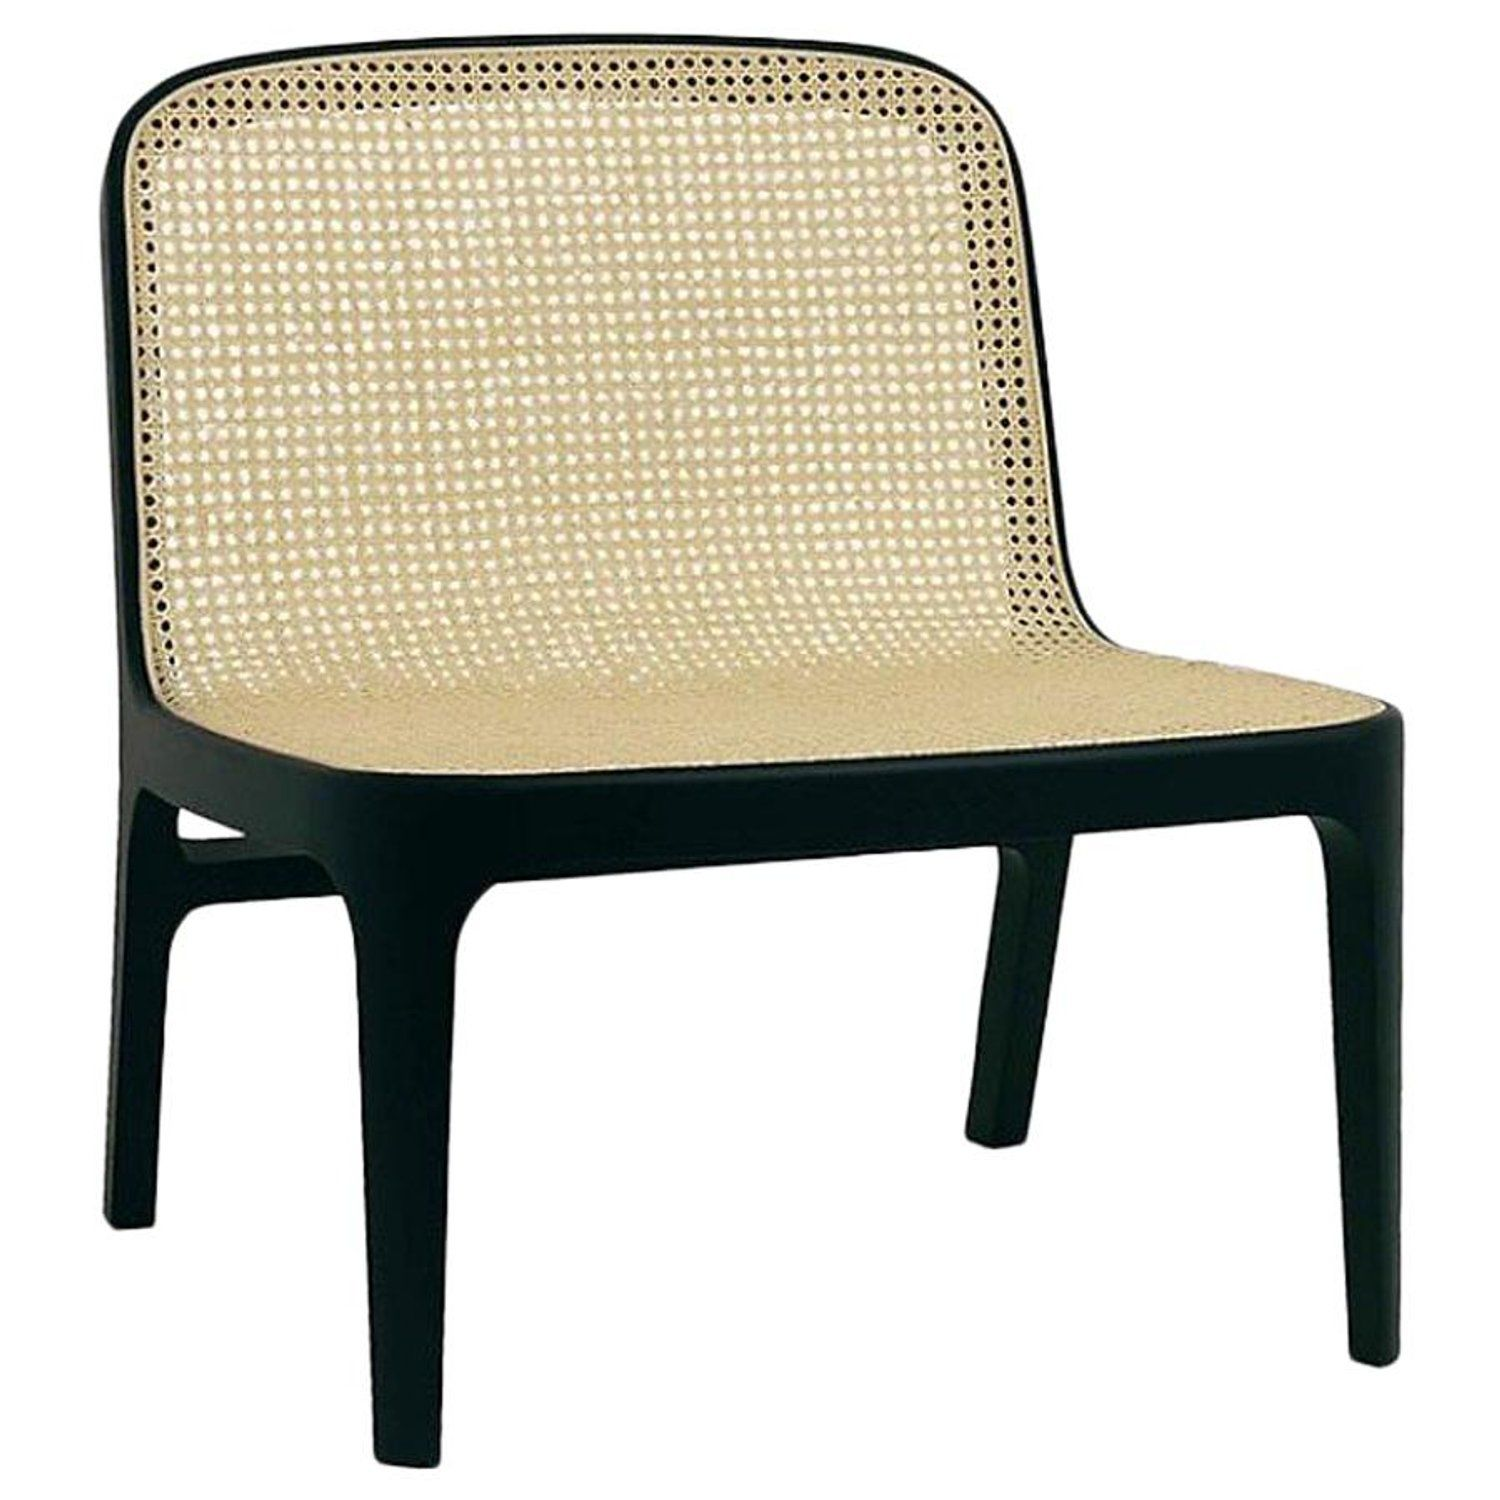 Fabian lounge chair contemporary french cane lounge chair